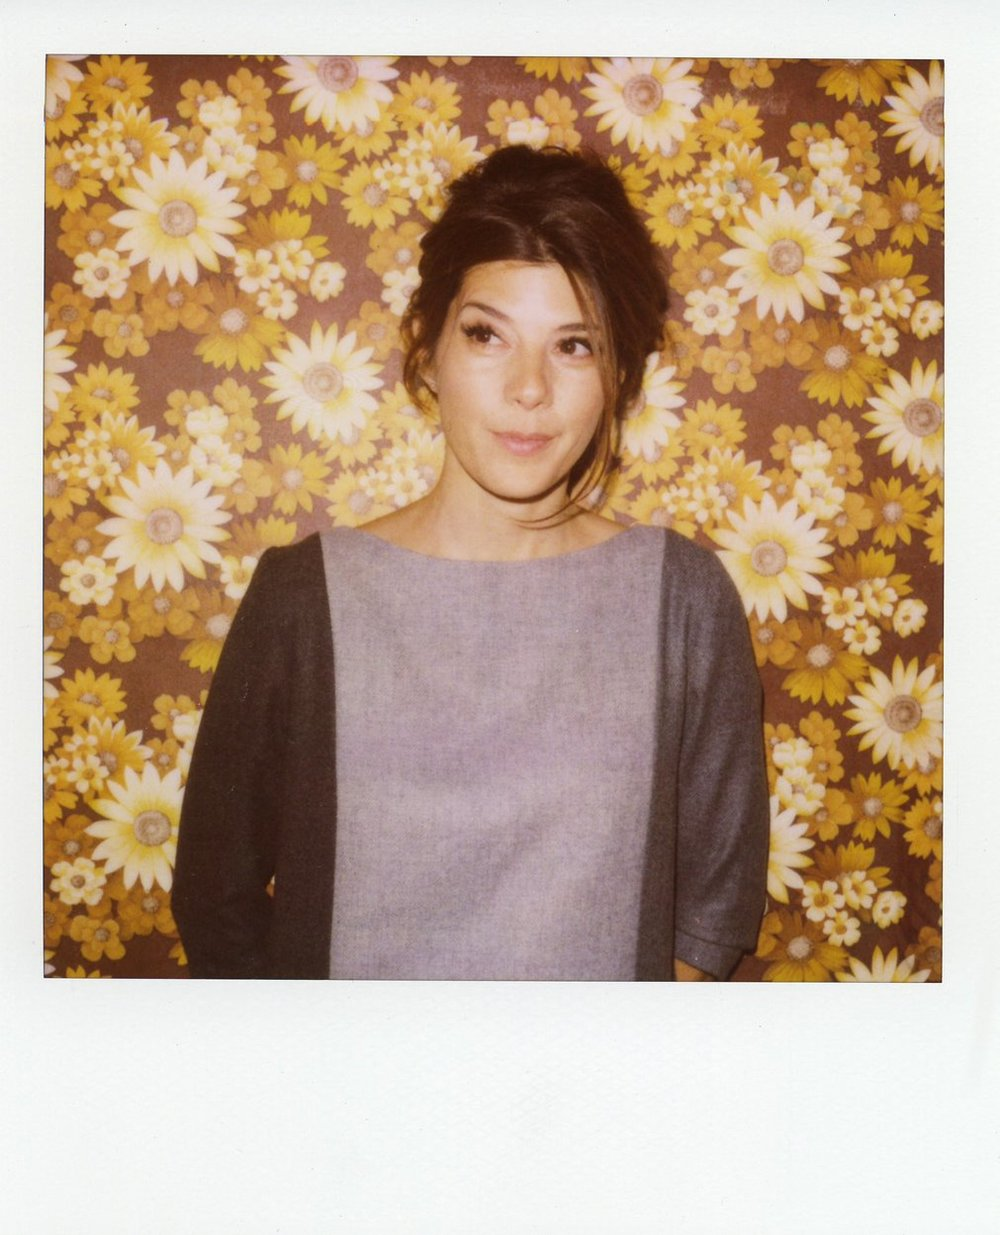 Got a girl crush on: Marisa Tomei in Boy. by Band of Outsiders     Marisa Tomei models  Boy by Band of Outsiders . Scott Sternberg and I seem to have the same girl crushes.   You and me both, icanmakewaffles!…all right it's more of a crush on Boy. by Band of Outsiders, which is cheating because it's actually designed by a guy–the dapper Scott Sternberg (what I  don't  have a crush on, though, are their prices. Oh, lawdy lawdy lawdy!). But we can let these things slip once in a while, right? I've loved their picks for models so far: Kirsten Dunst, Sarah Silverman and now Marisa Tomei. Scott sure knows how to sell to women. More adorable polaroids of Marisa strutting her stuff  here .   (via  icanmakewaffles )